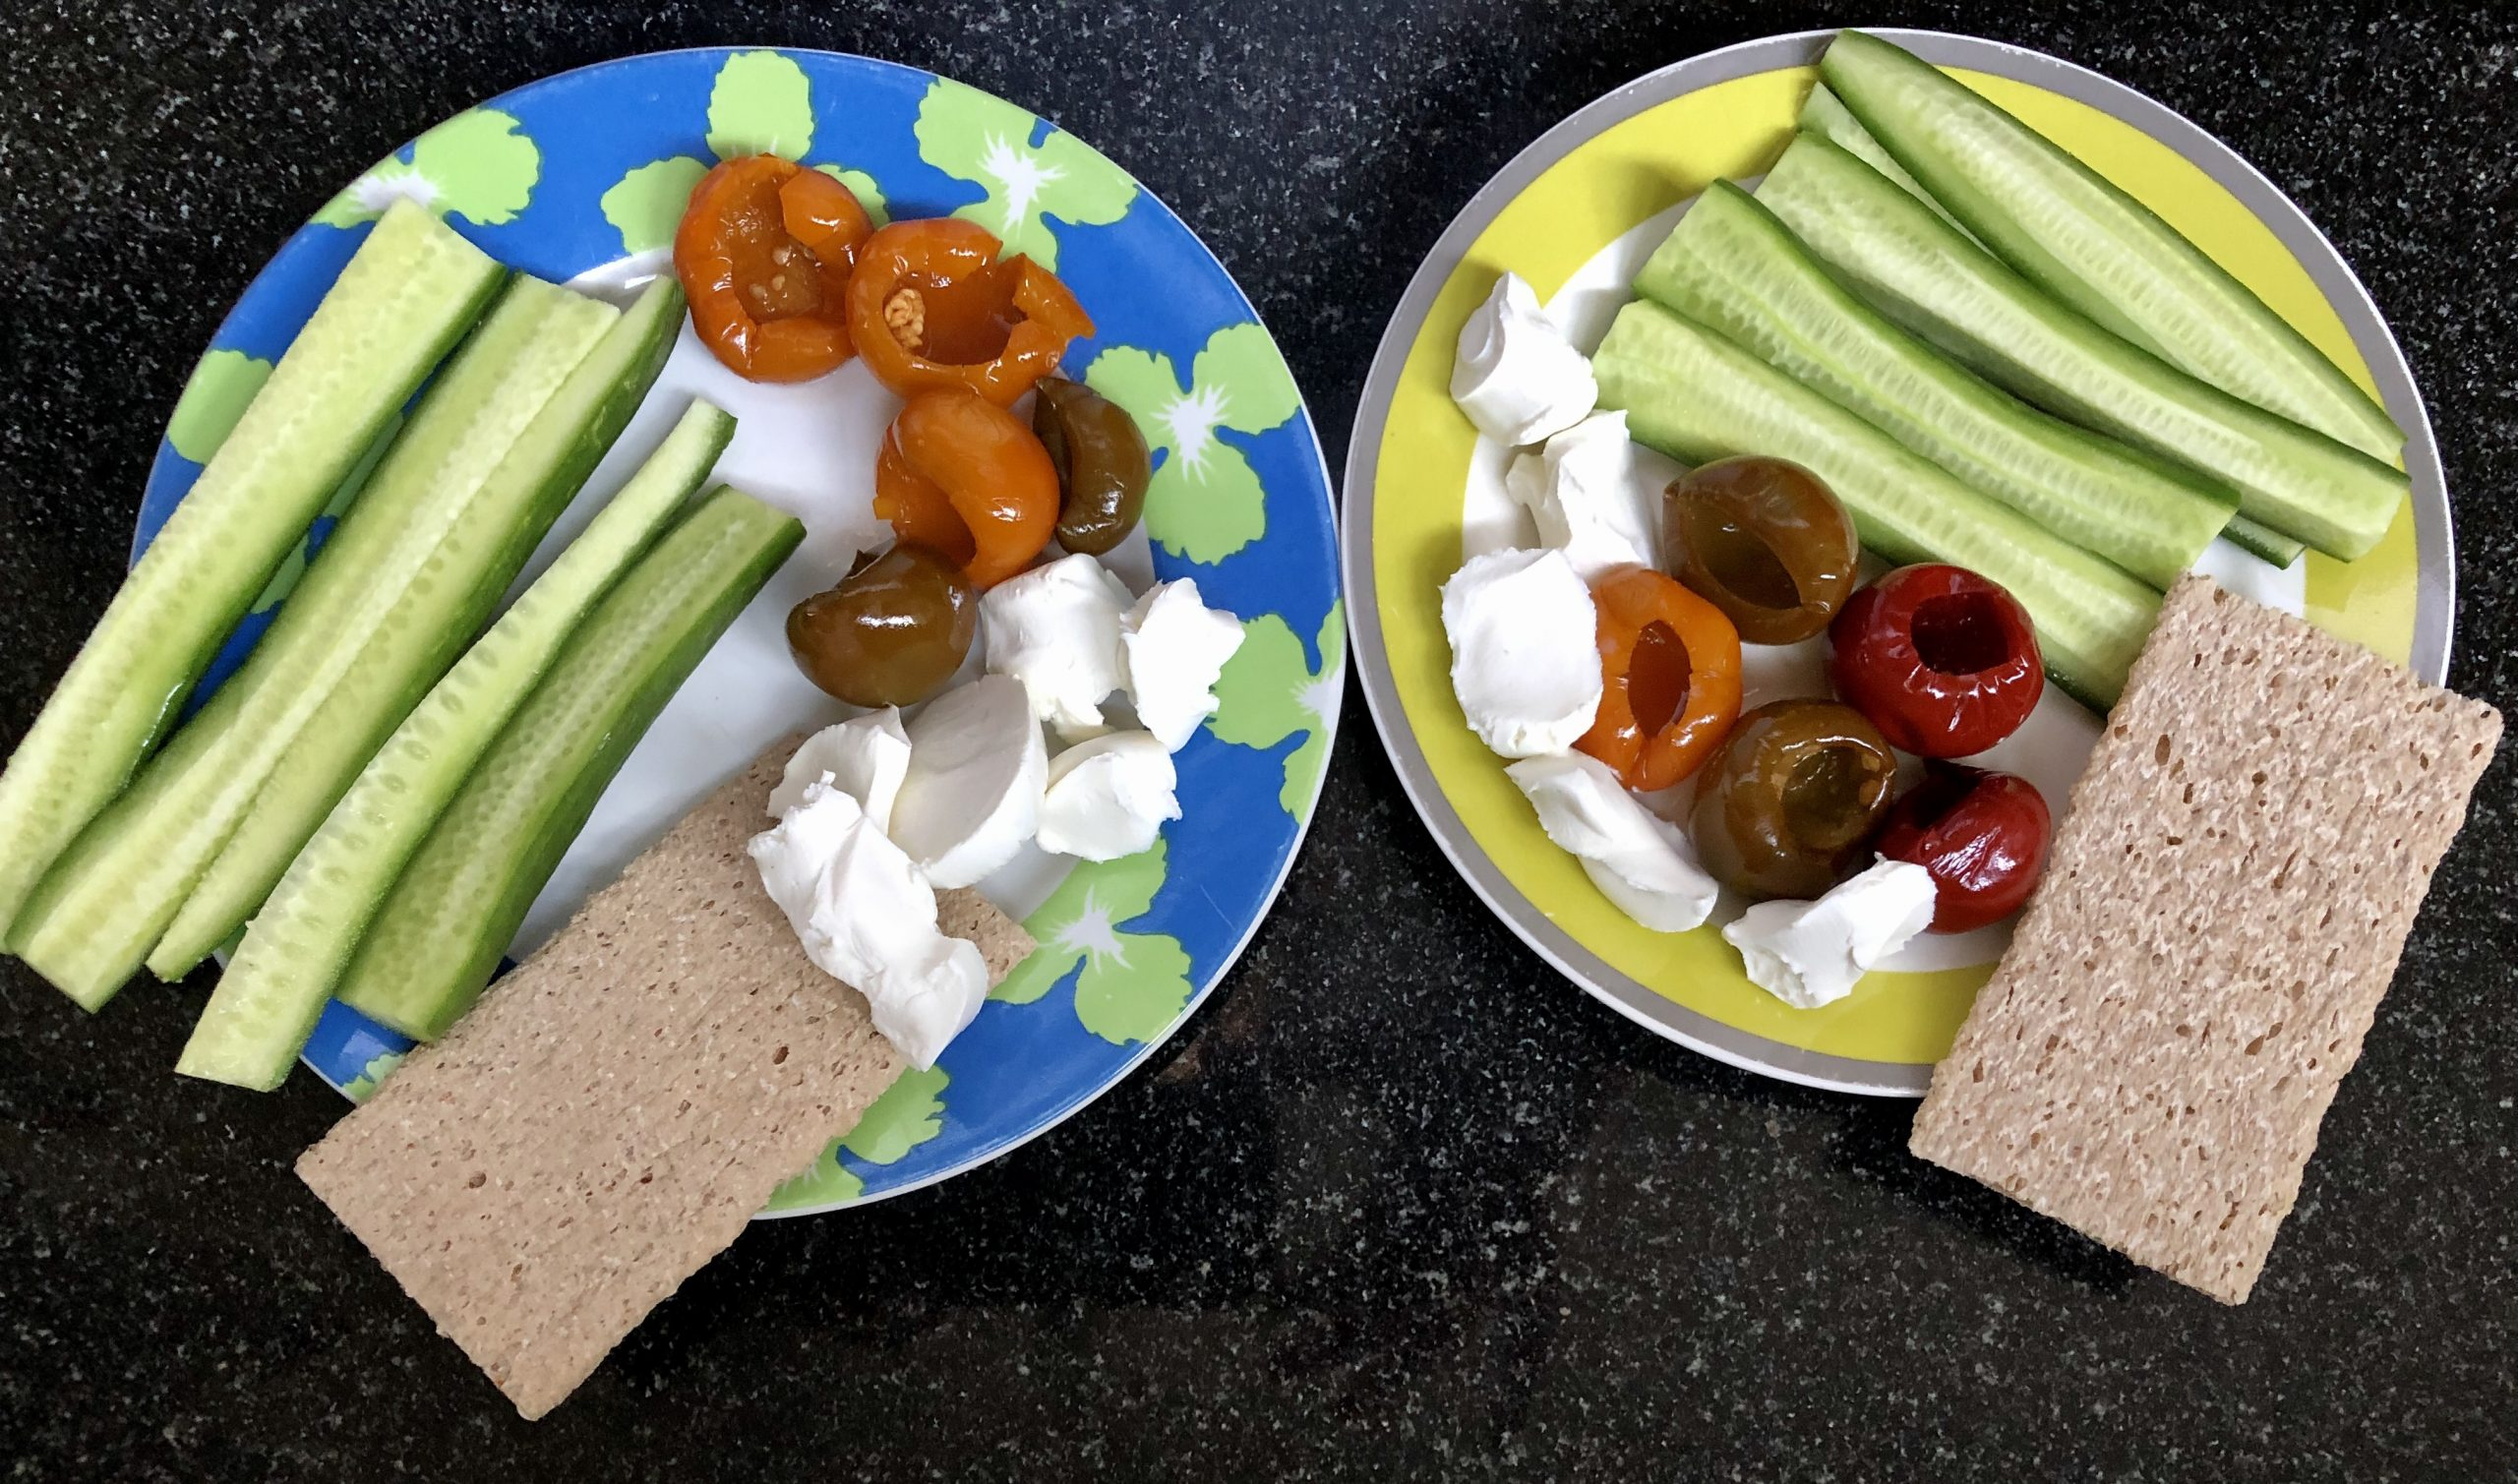 Mediterranean diet breakfast: marinated mini peppers, cucumbers, goat cheese and crackers